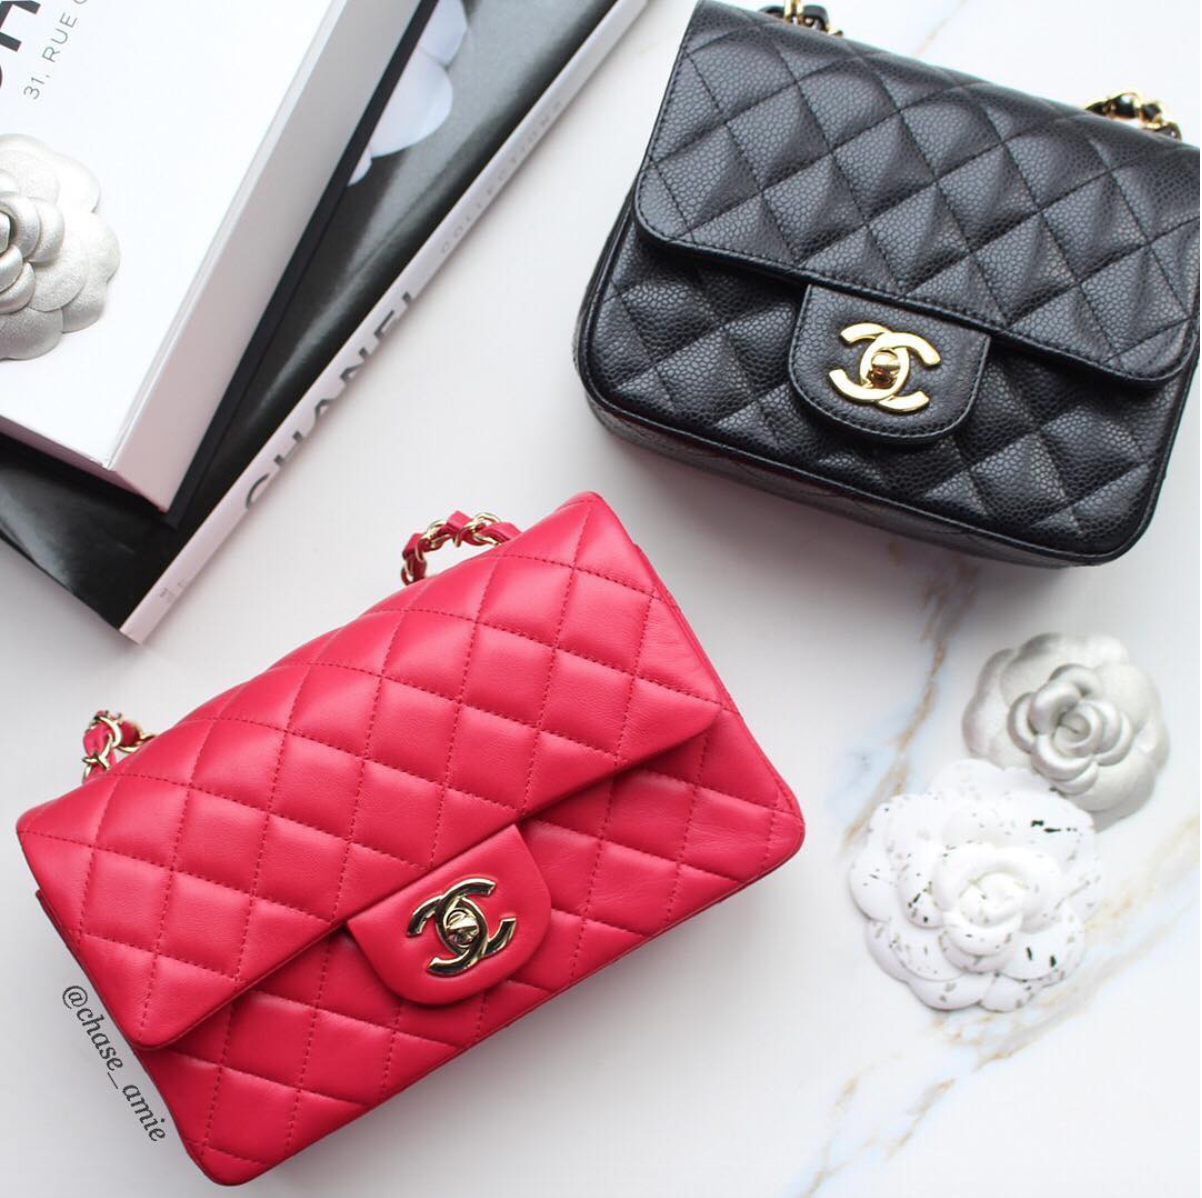 c0d519e7bd8e How To Buy a Chanel Mini - Chase Amie